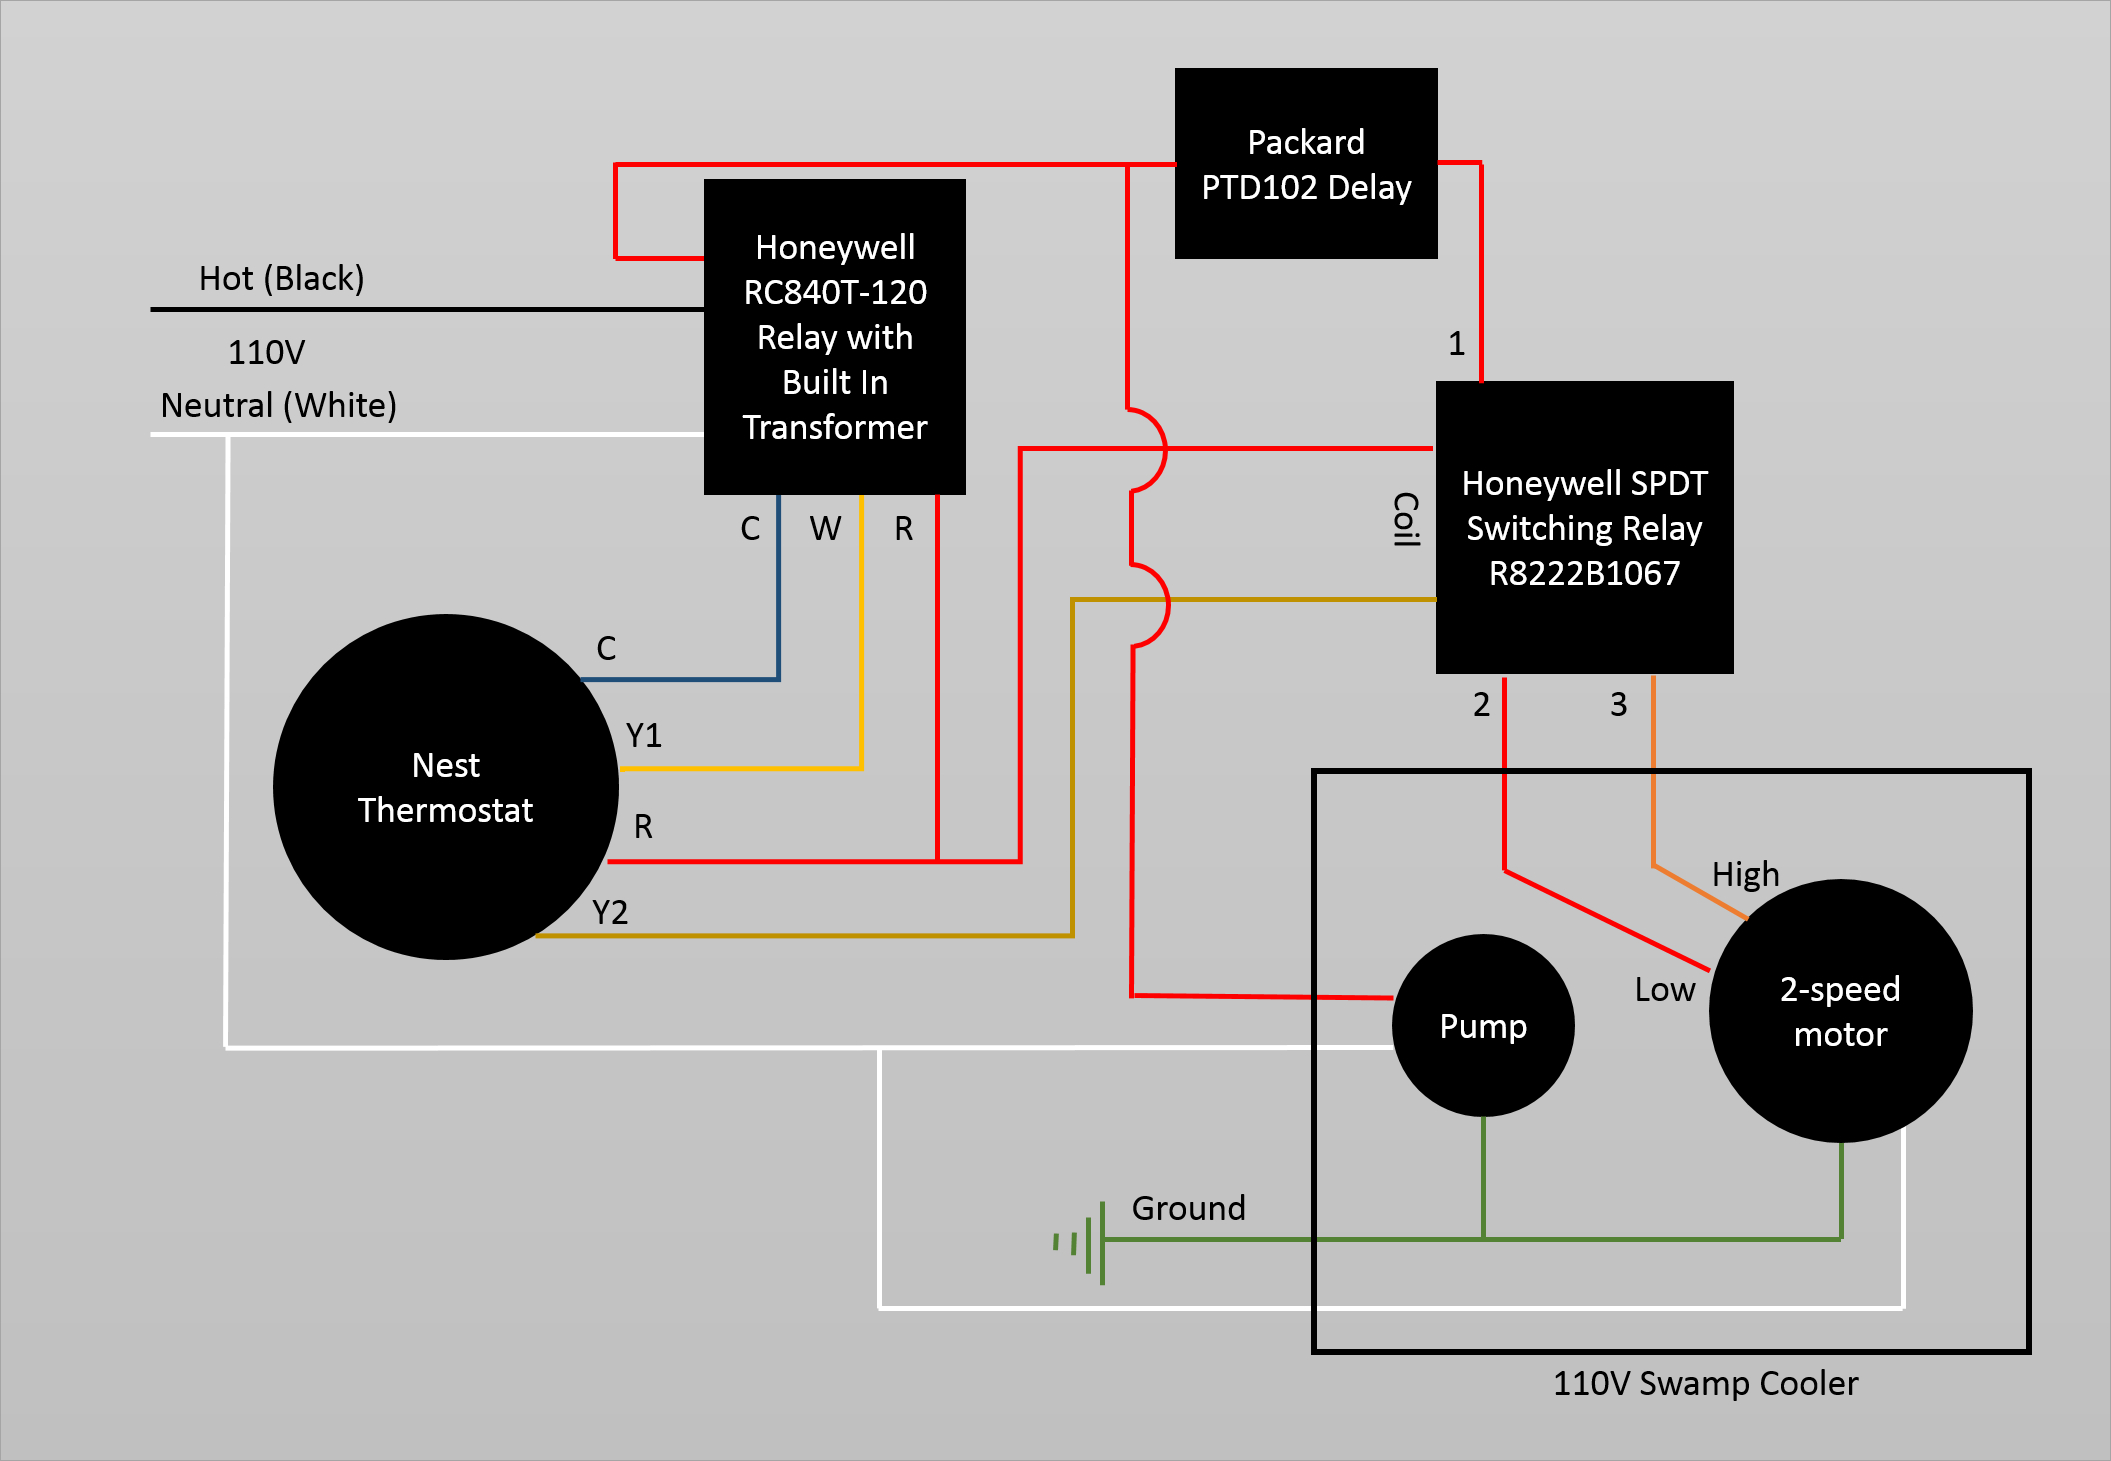 Wiring - Controlling 110V Swamp Cooler Using Nest Thermostat - Home - 4 Wire Nest Thermostat Wiring Diagram